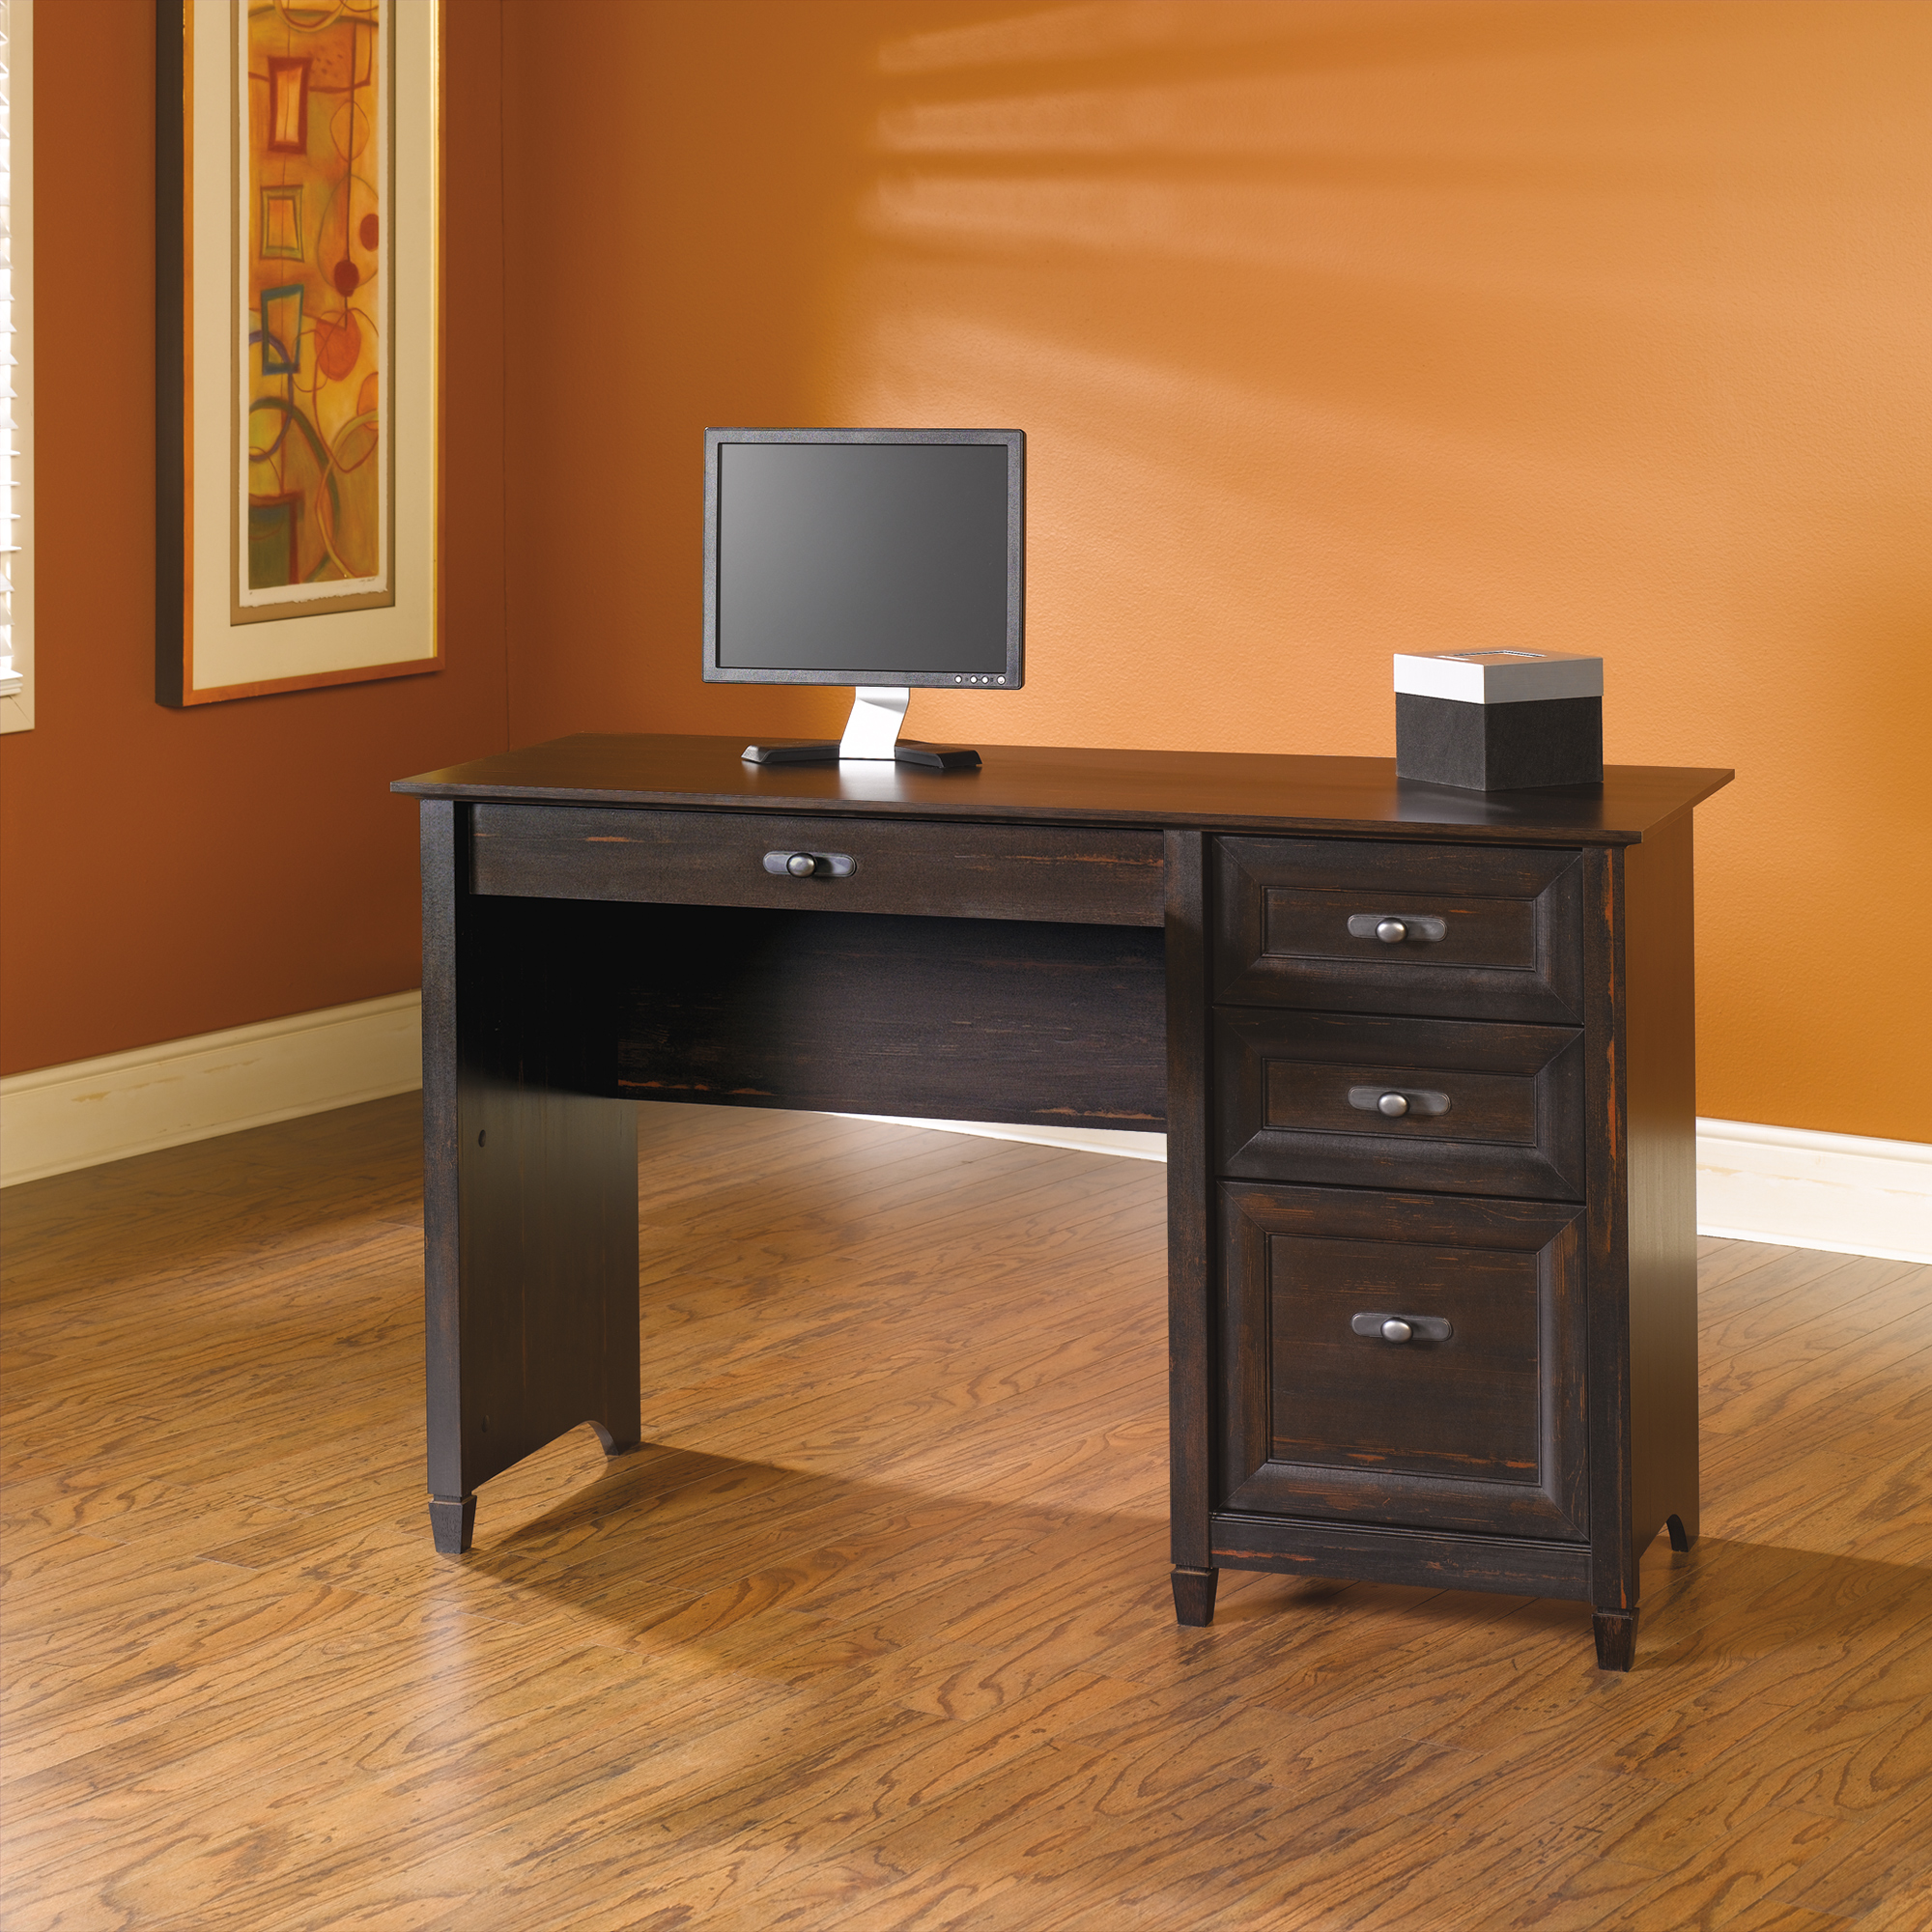 Saunders Desk | Sauder Computer Desks | Desk with Filing Cabinet